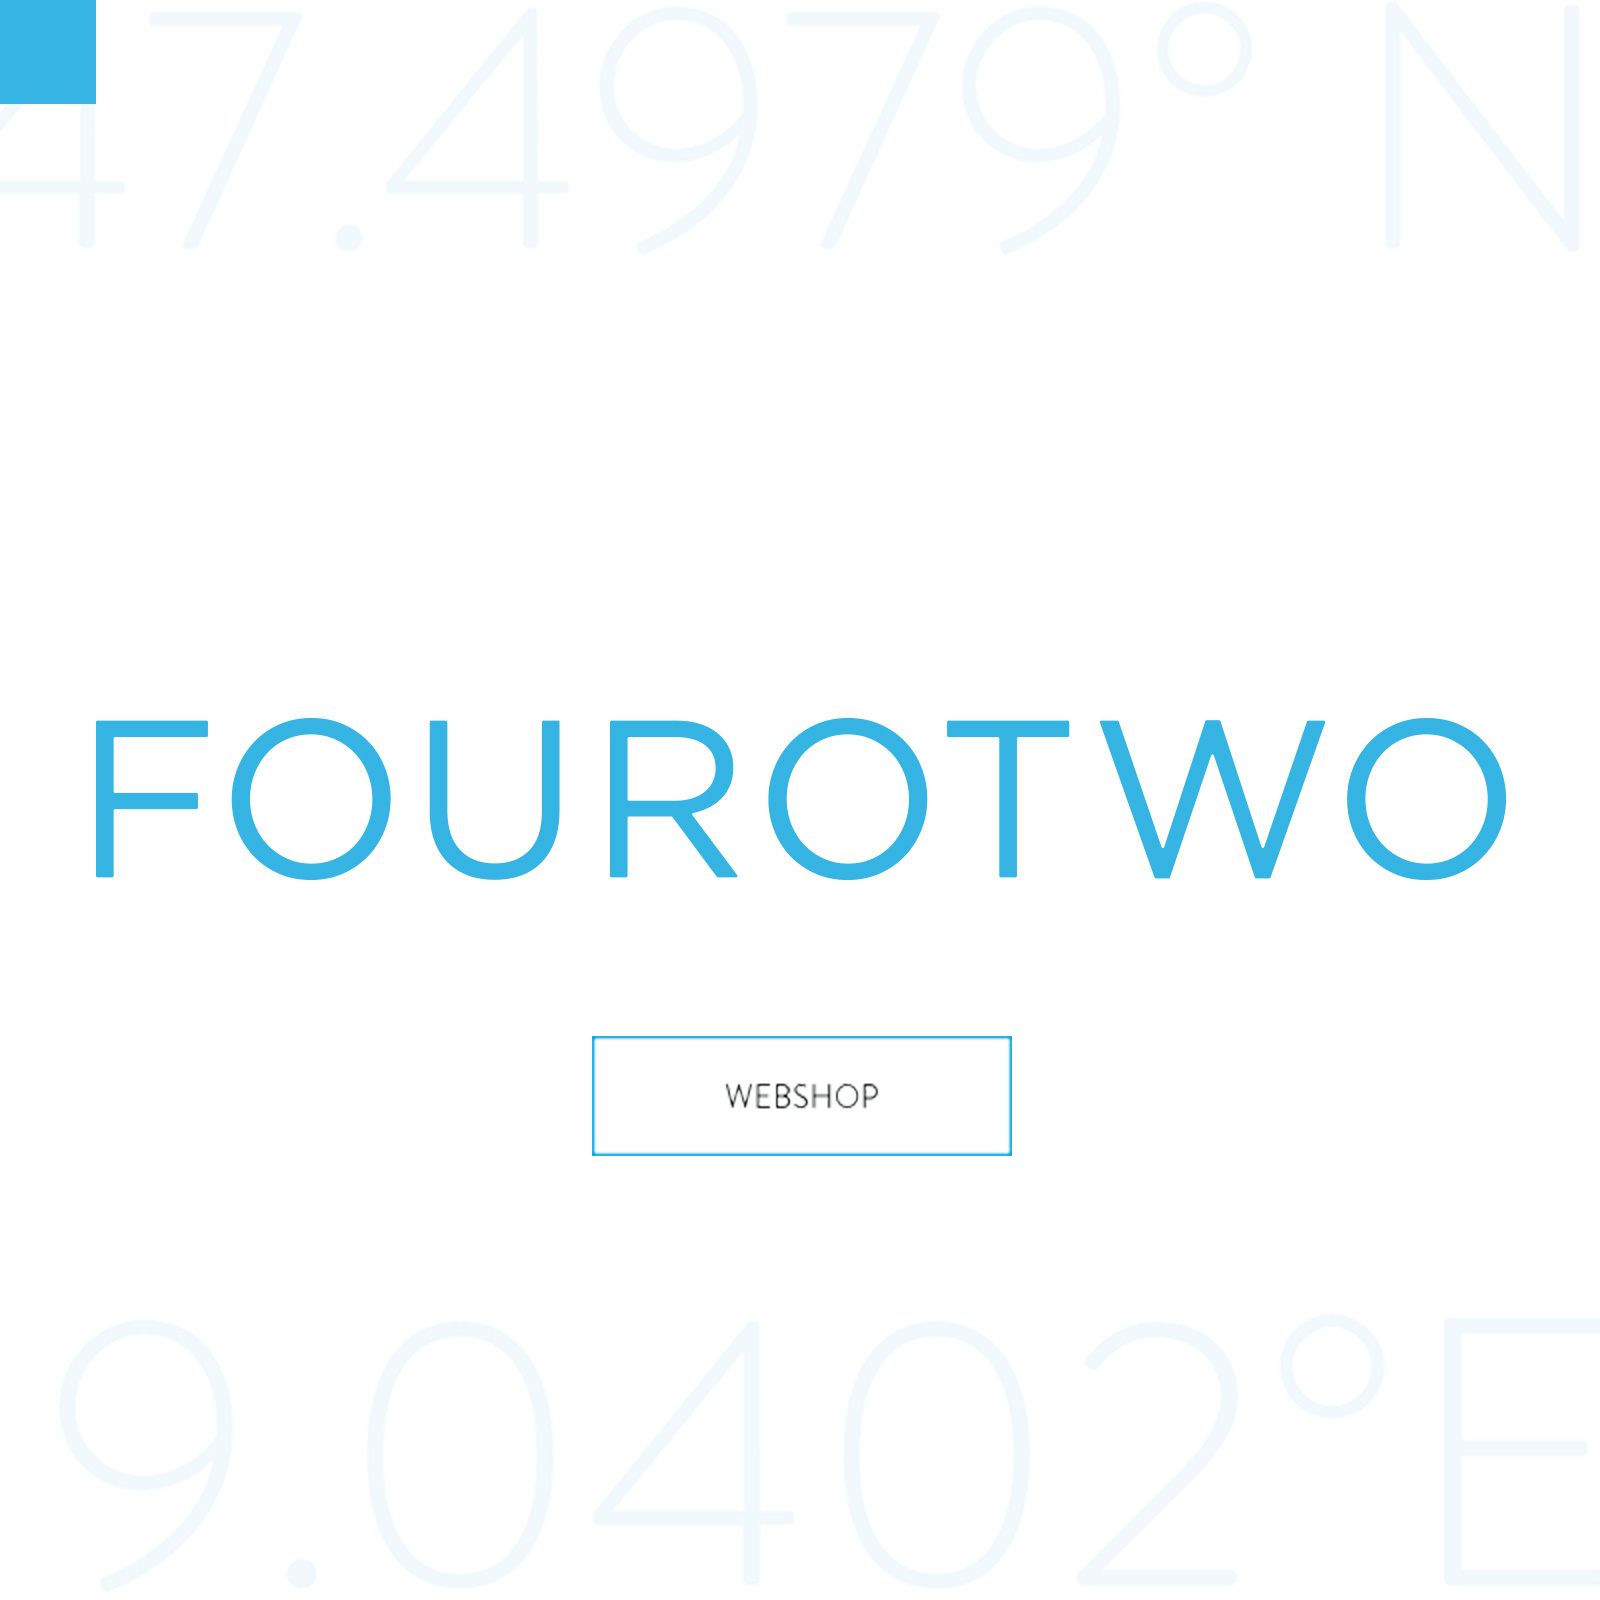 Forotwo